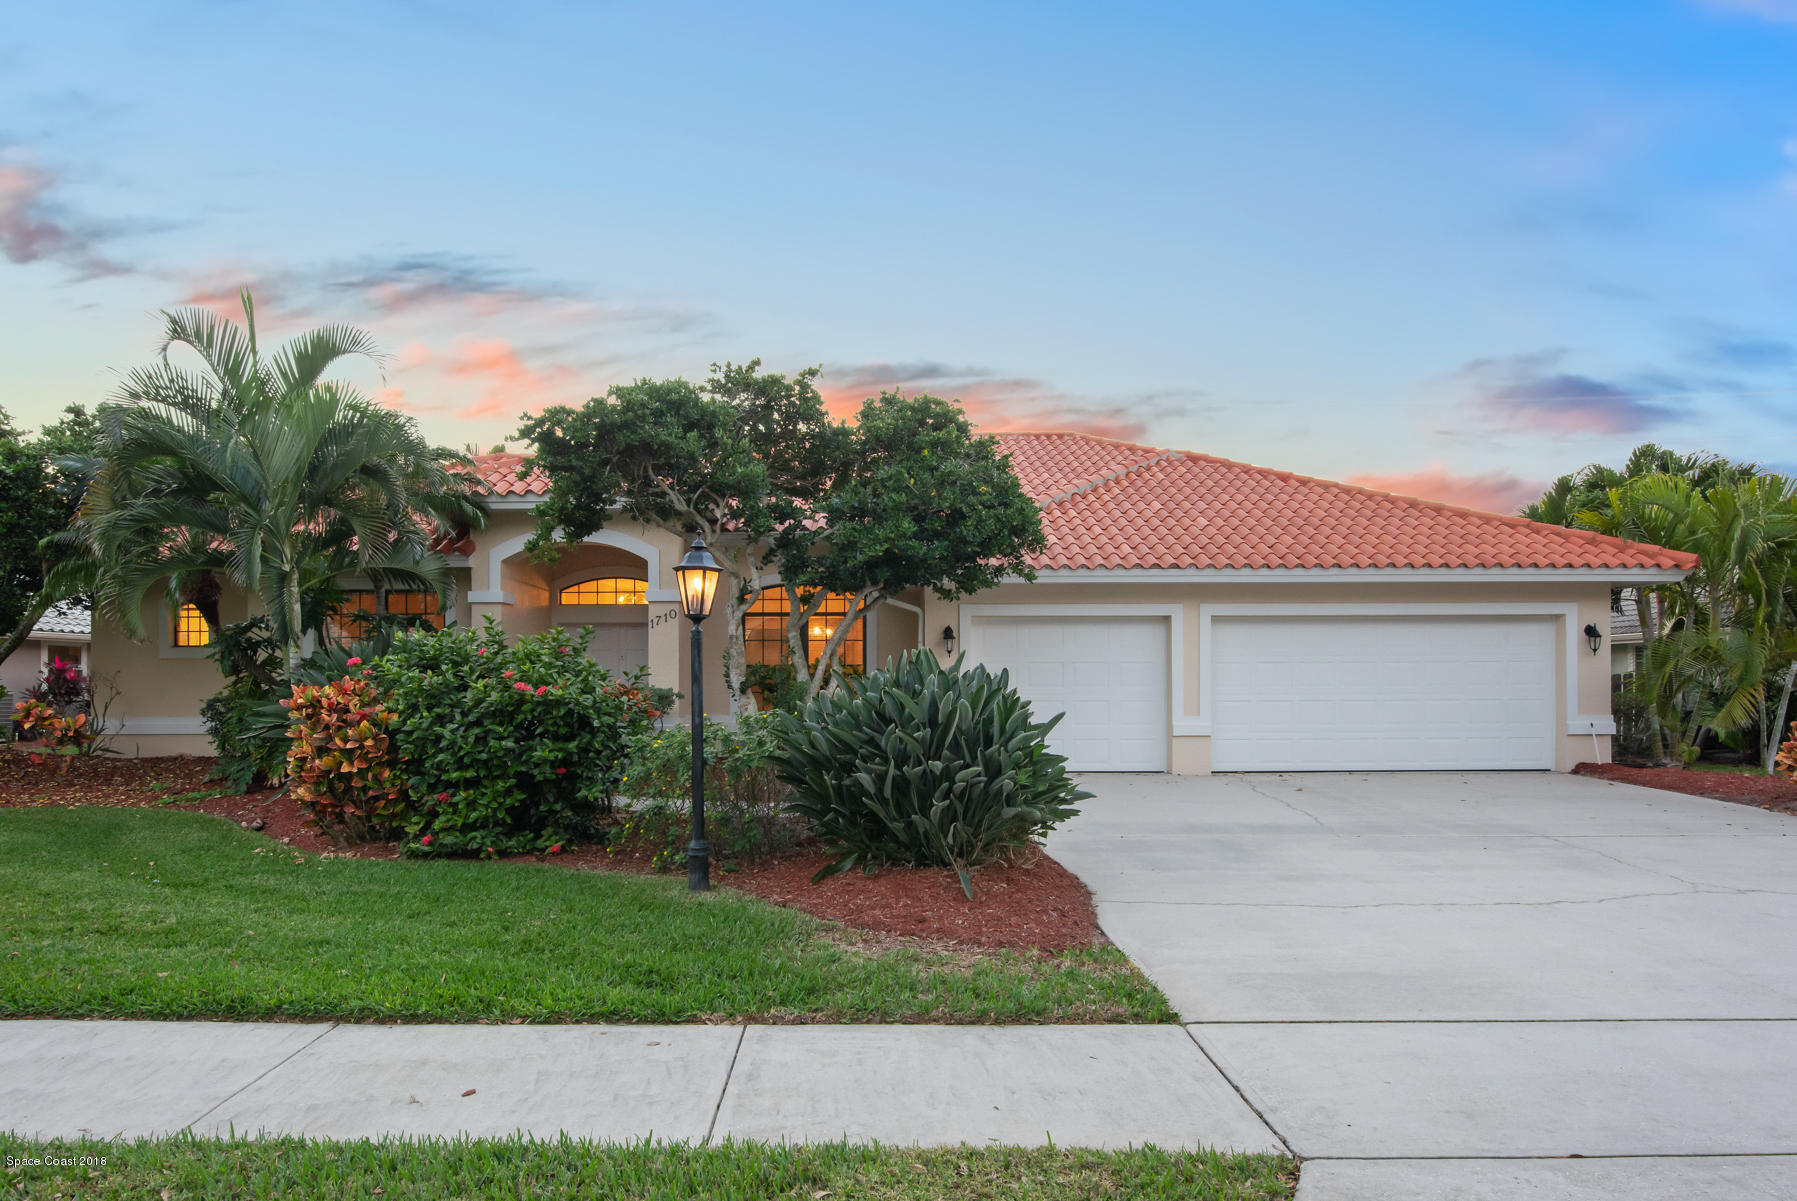 Single Family Home for Sale at 1710 Canterbury 1710 Canterbury Indialantic, Florida 32903 United States